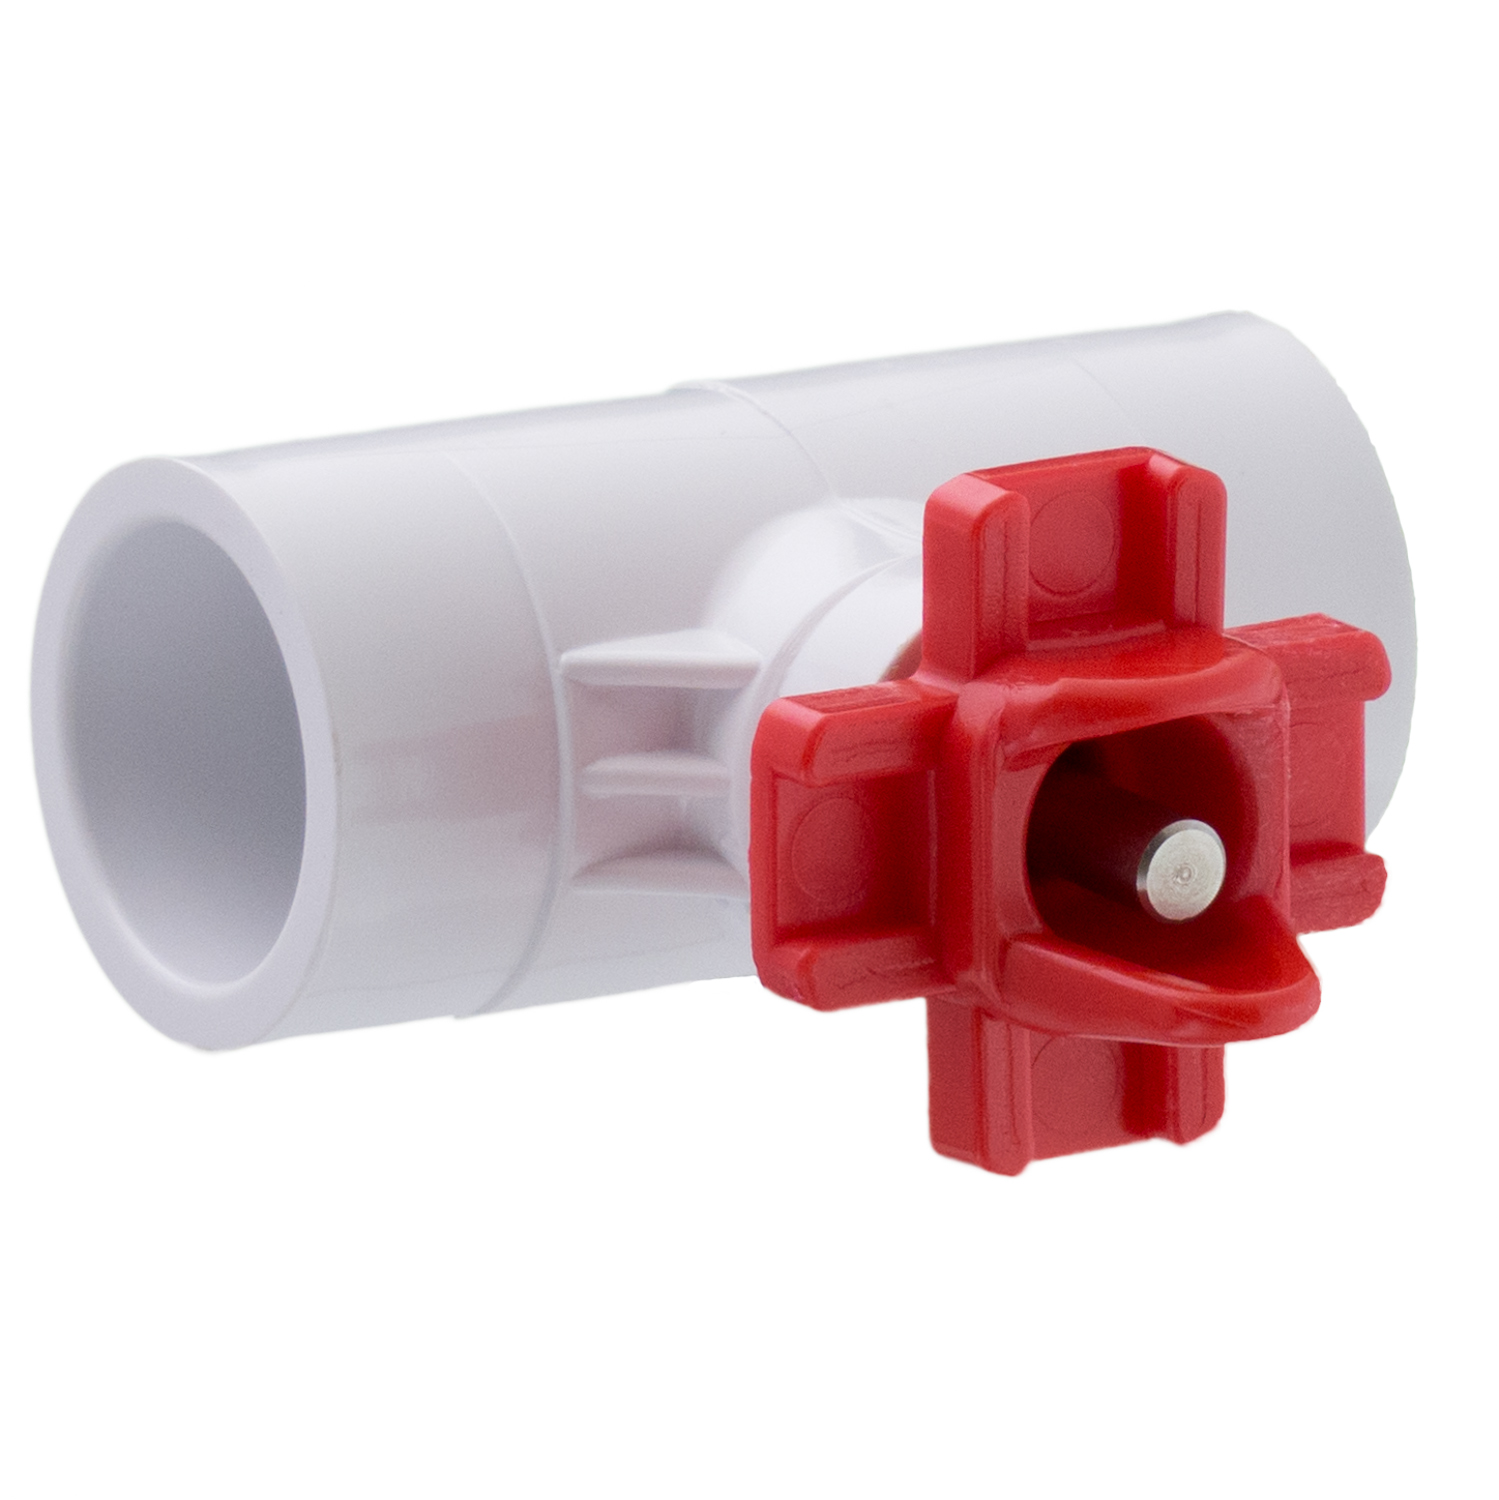 HORIZONTAL NIPPLE DRINKERS with TEE FITTINGS for Backyard Flock Automatic Poultry Watering System (5 Nipple Drinkers / 5 Tee Fittings)